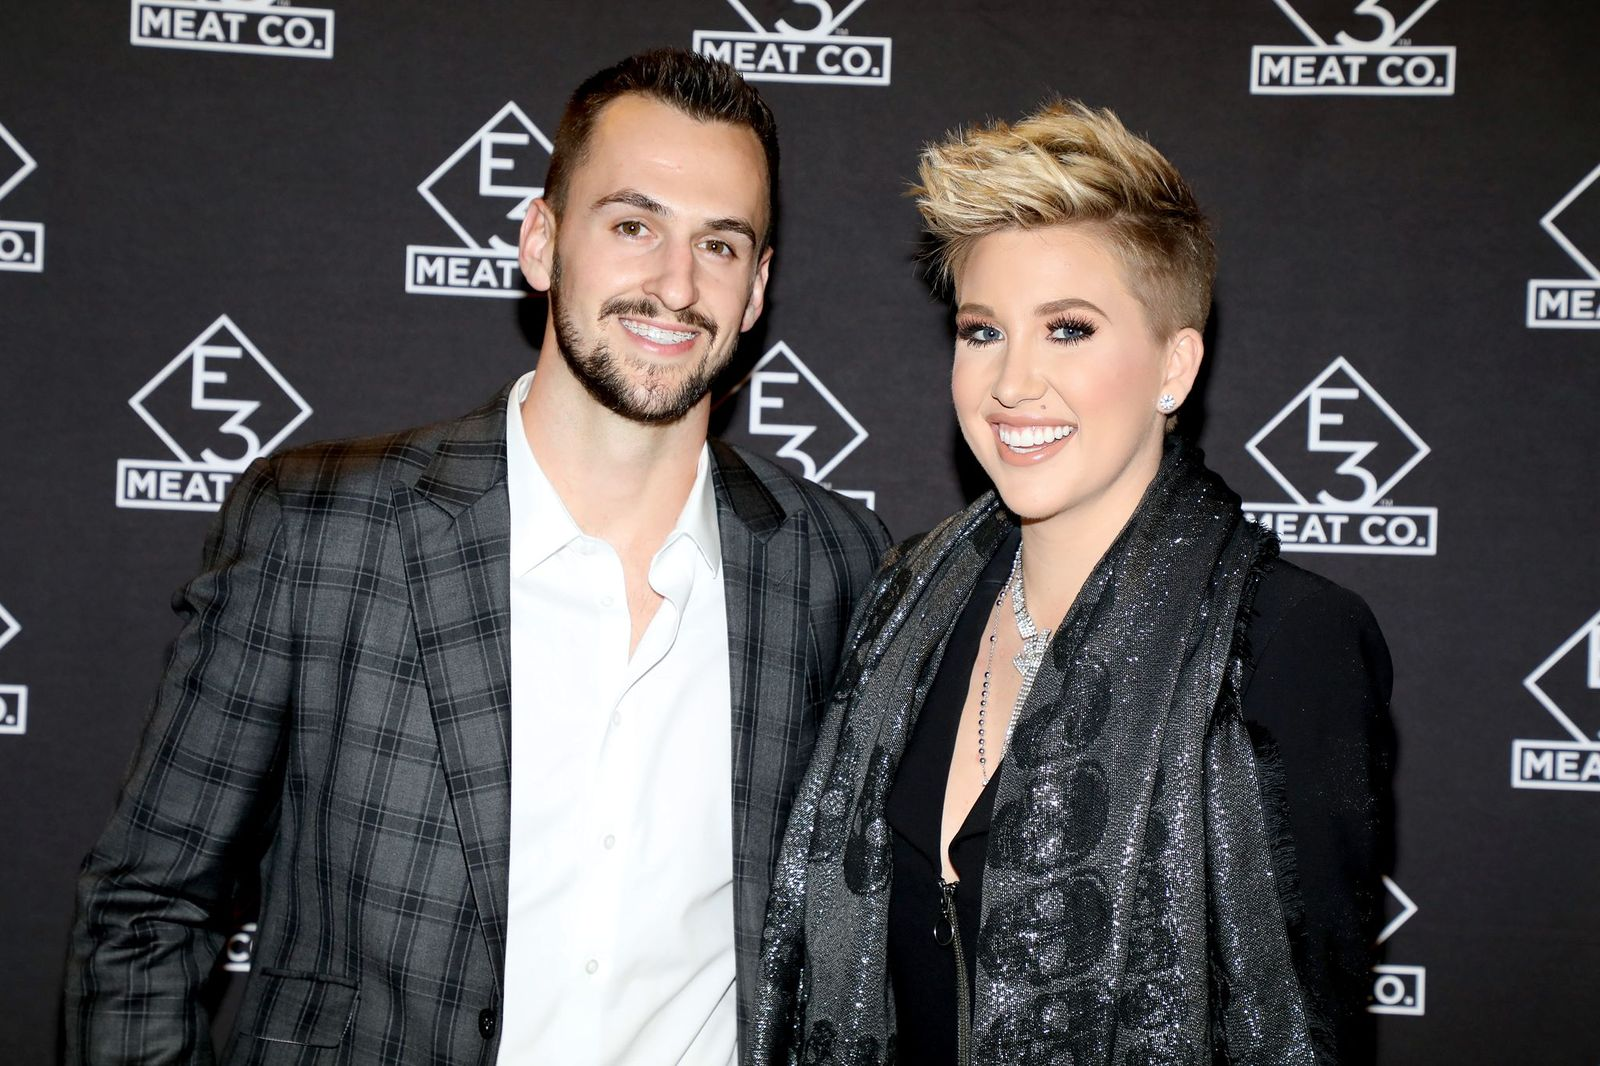 Nic Kerdiles and Savannah Chrisley at the grand opening of E3 Chophouse Nashville on November 20, 2019, in Nashville, Tennessee | Photo: Danielle Del Valle/Getty Images